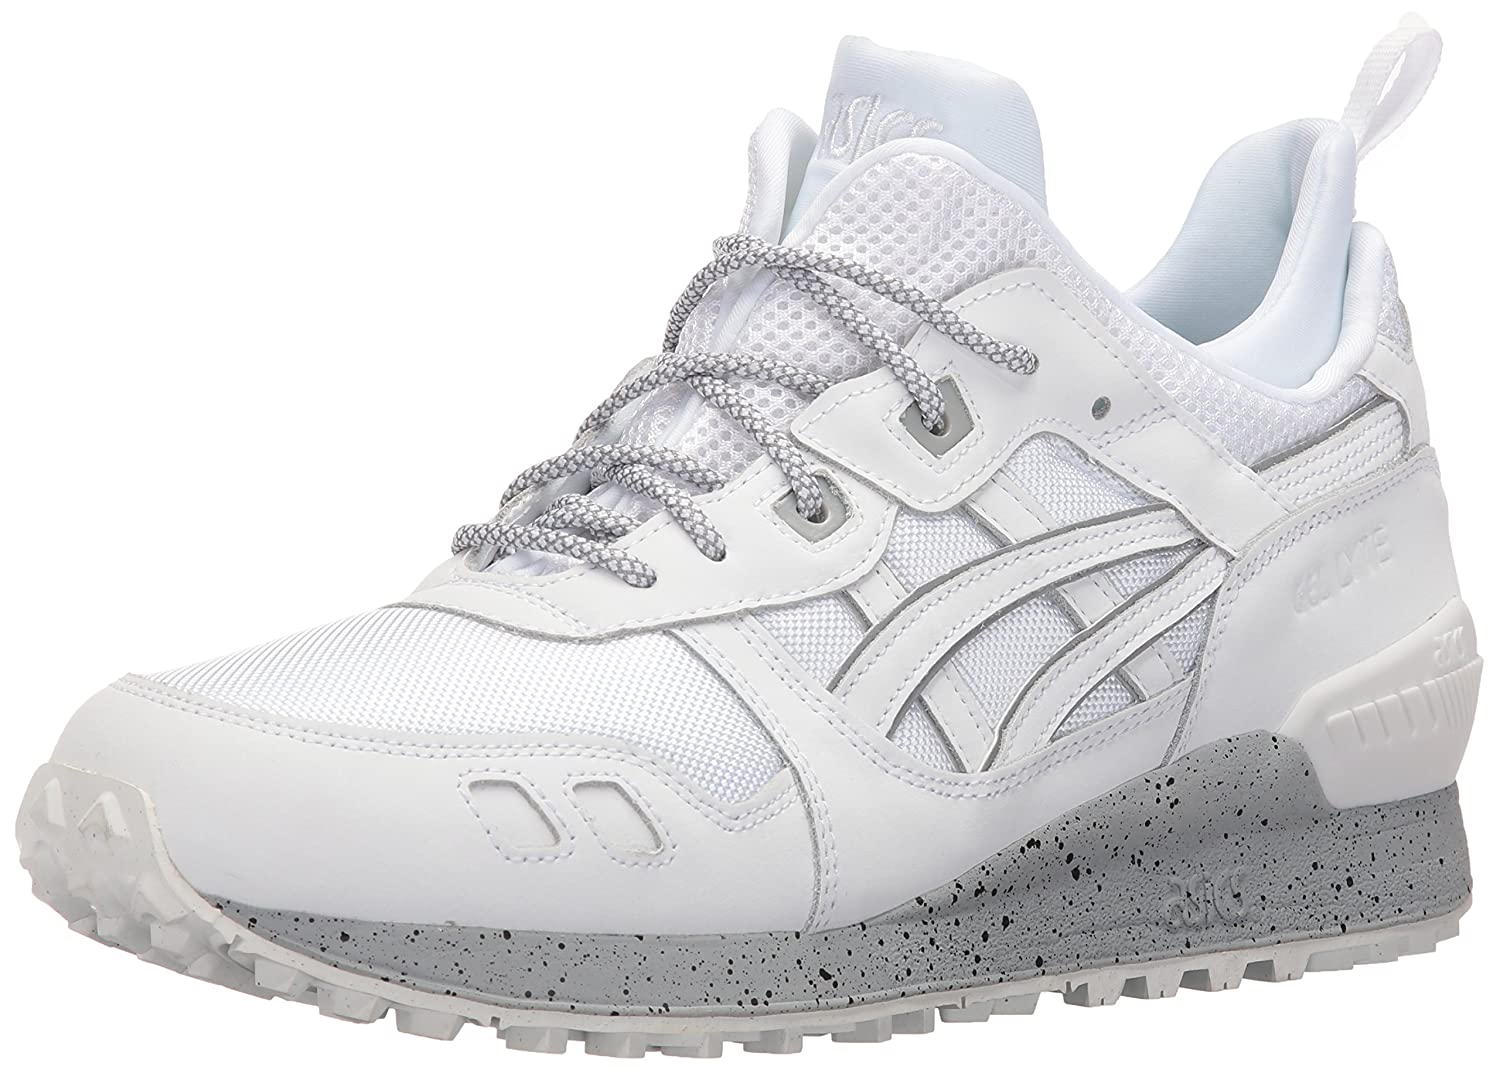 ASICS Men's Gel-Lyte MT Fashion Sneaker B01ETZRYMI 7 D(M) US|White/White